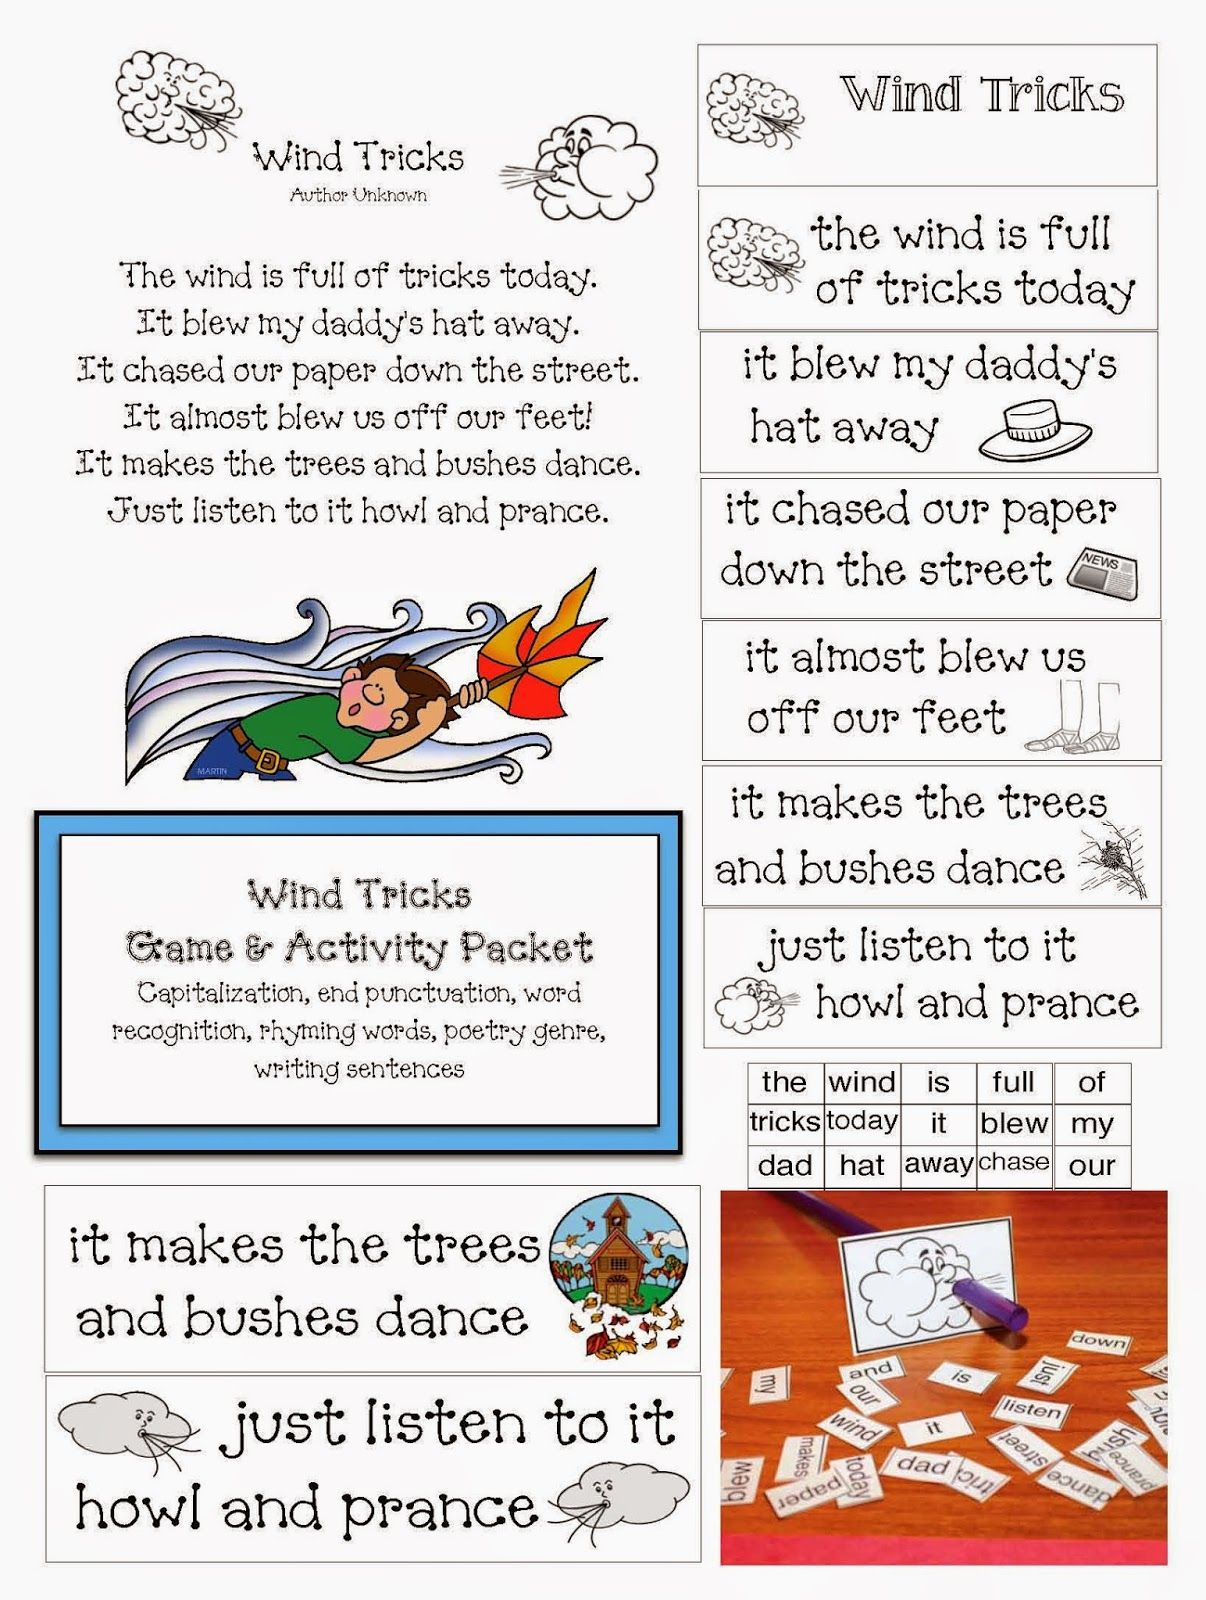 Wind Tricks Poetry Packet